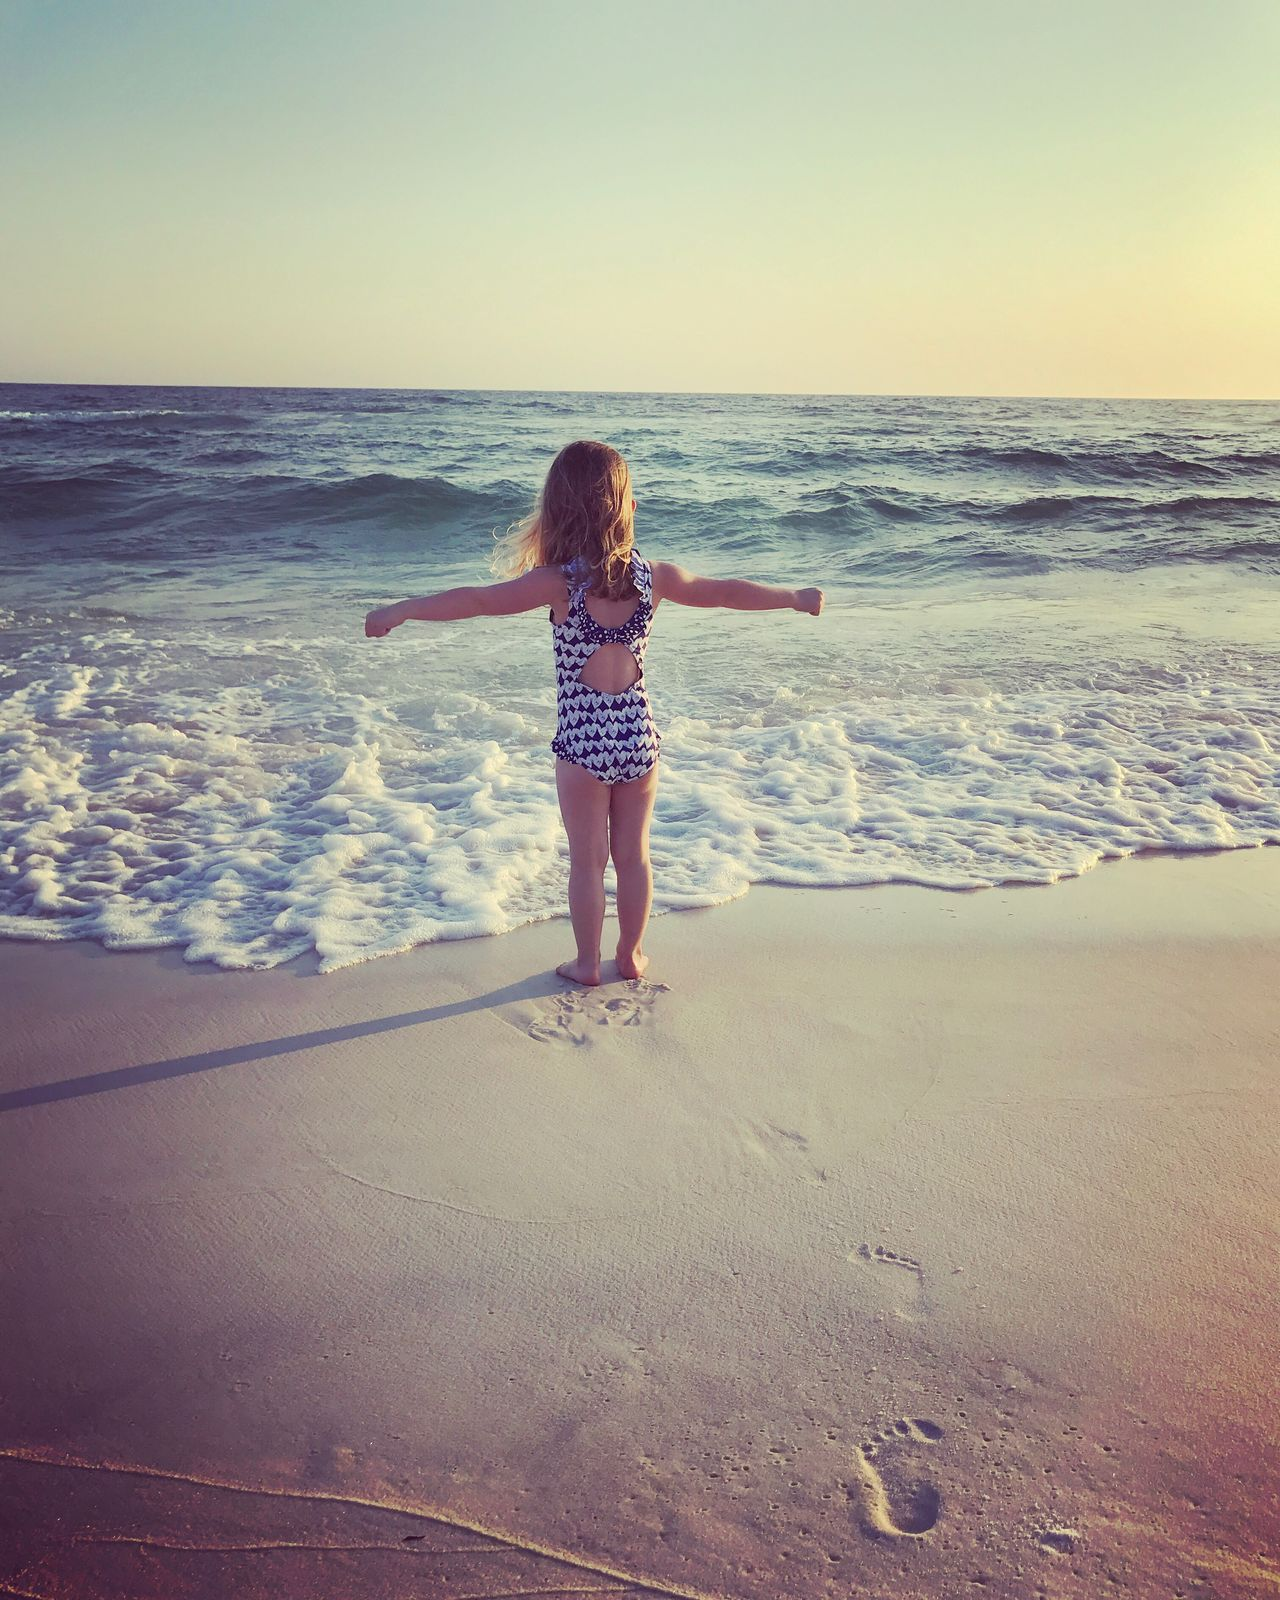 Beach Life Carefree Arms Outstretched Vacations Horizon Over Water Toddler On Beach White Sand Emerald Coast This Week On Eyeem Footprints In The Sand